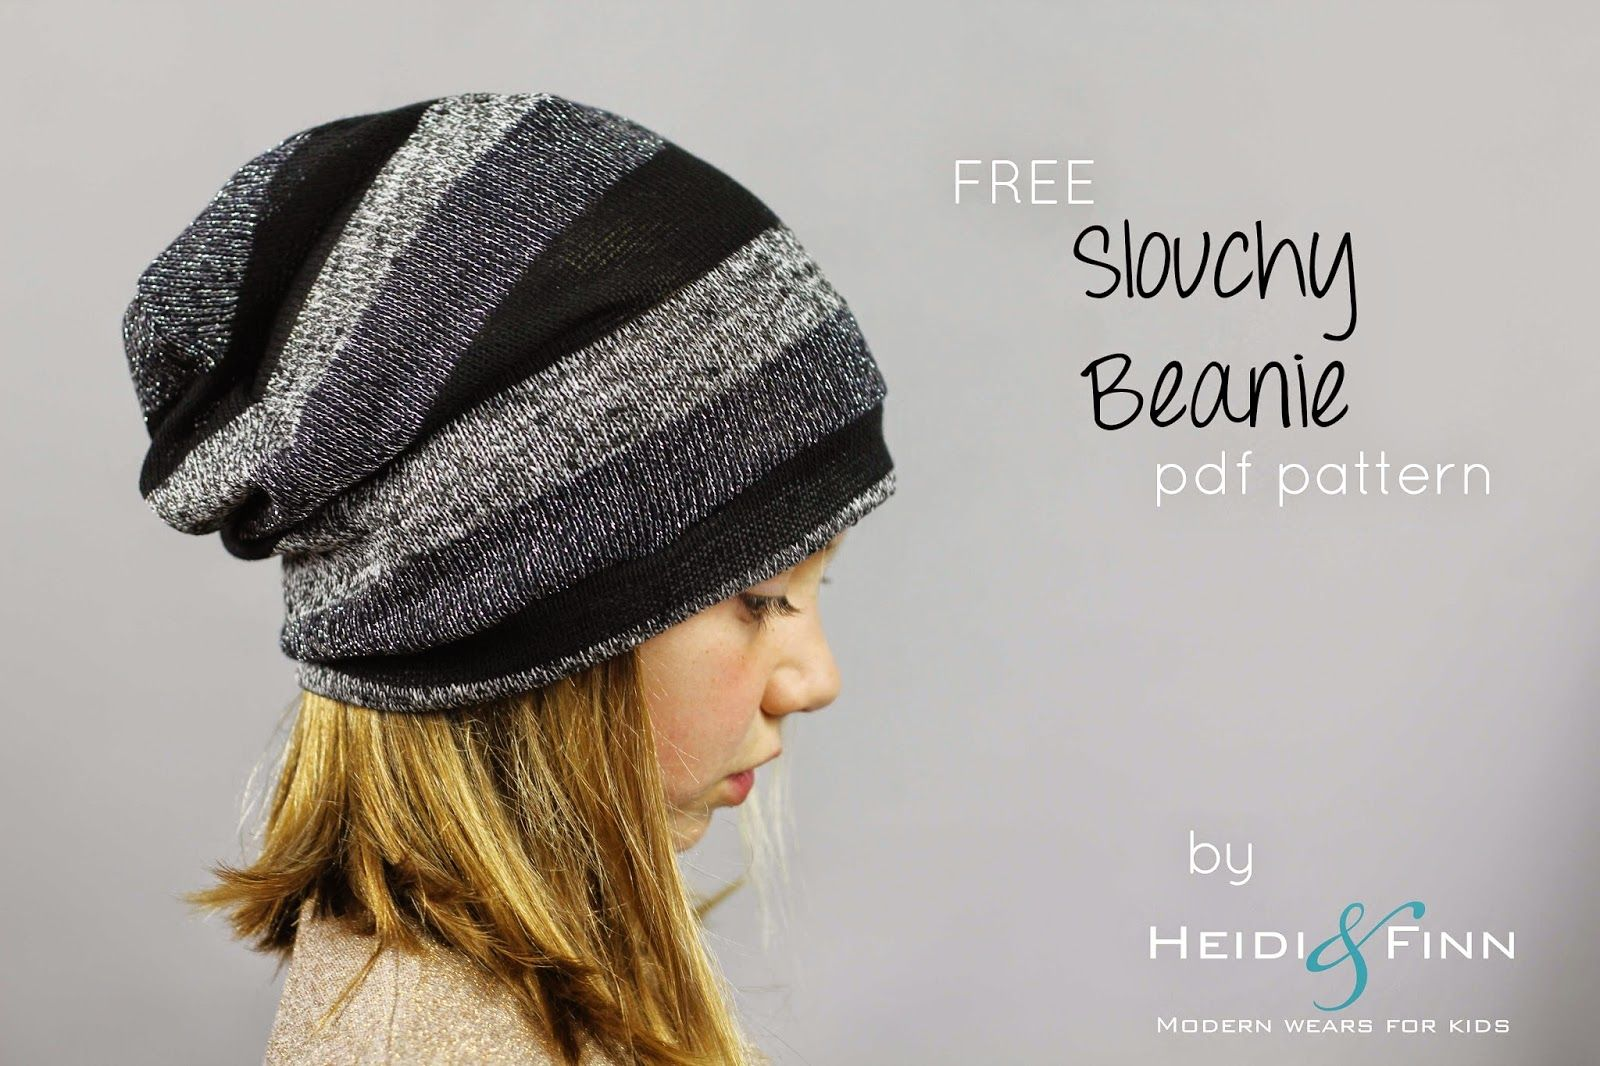 Heidiandfinn modern wears for kids slouchy beanie hat free free hat sewing patterns heidiandfinn modern wears for kids slouchy beanie hat free overview jeuxipadfo Image collections